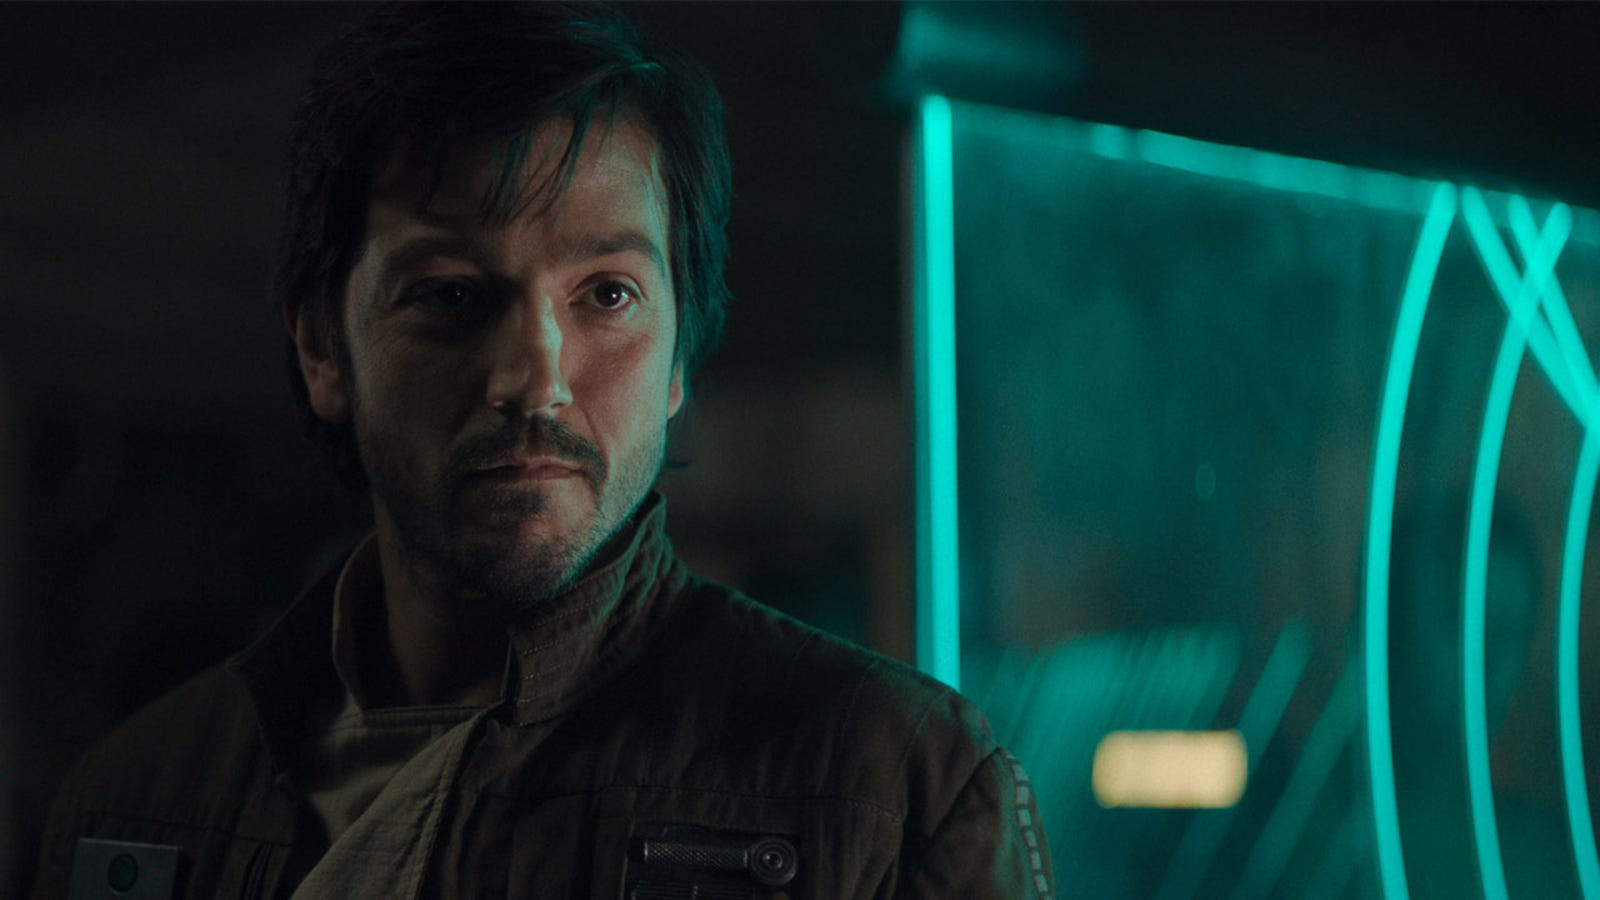 Cassian Andor Is Getting His Own Star Wars Streaming Series